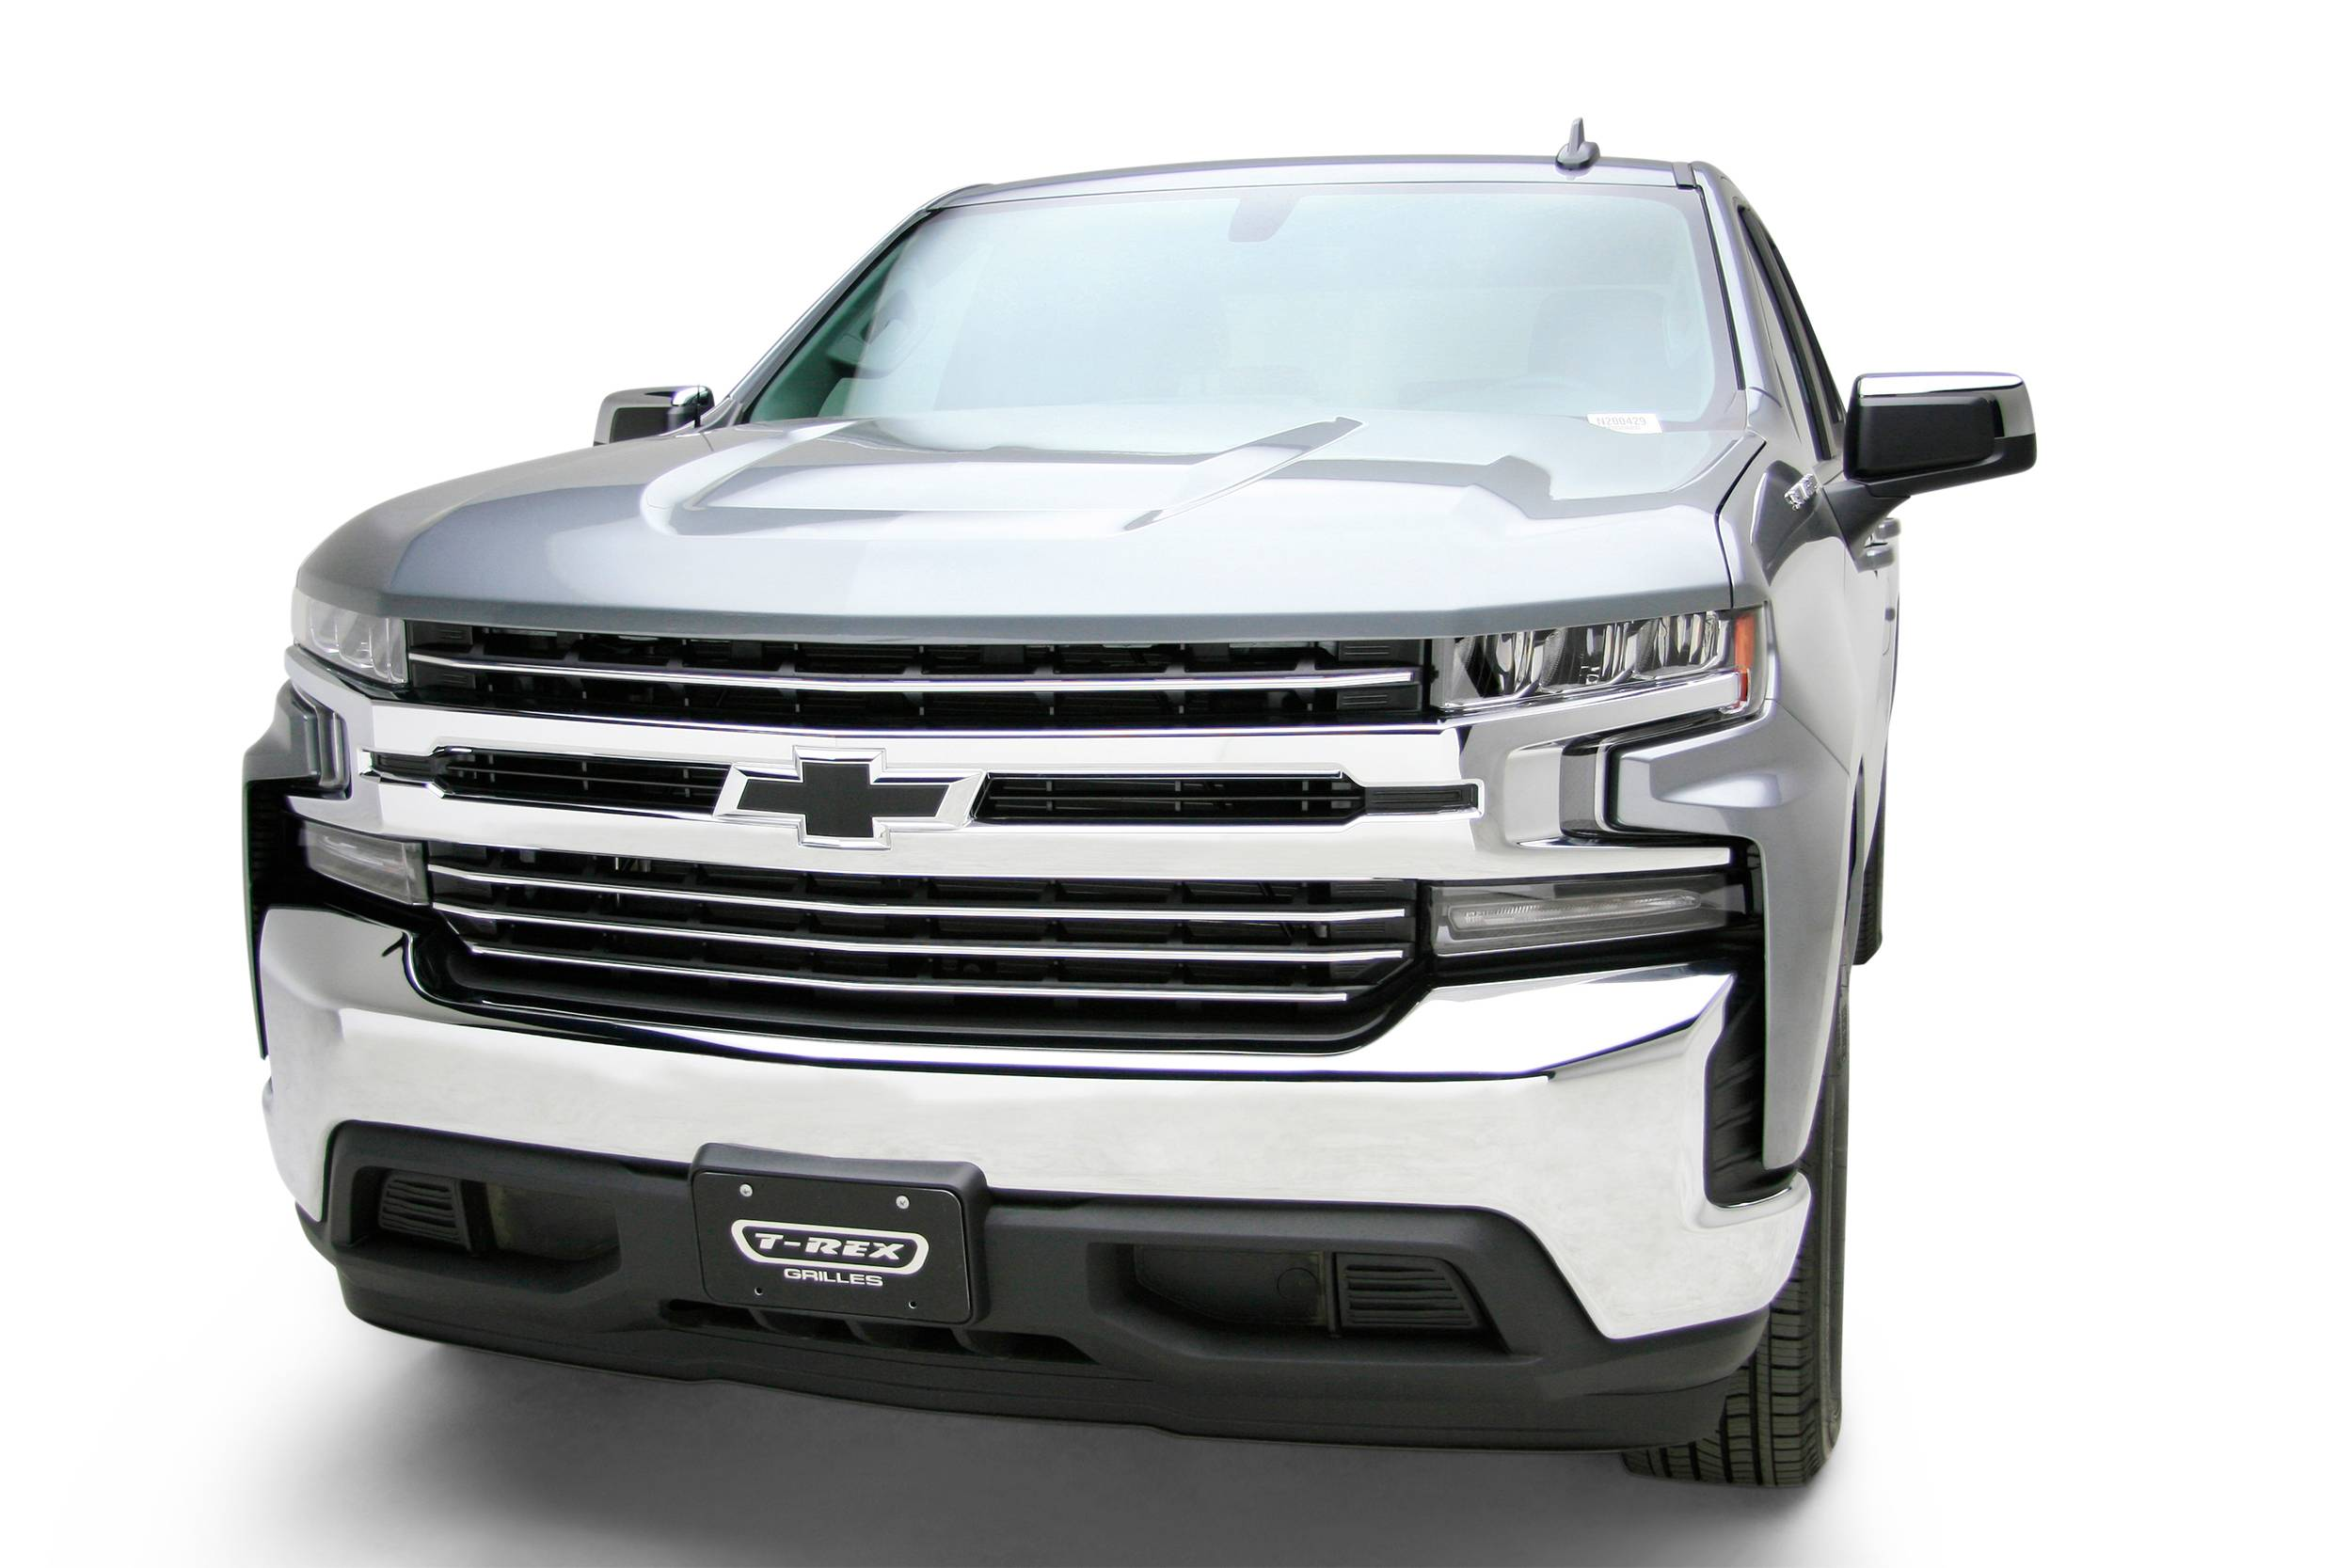 T-REX Grilles - 2019-2021 Silverado 1500 Trail Boss, RST, LT Round Billet Grille, Horizontal Round, Polished, 4 Pc, Overlay, Does Not Fit Vehicles with Camera - PN #6211232